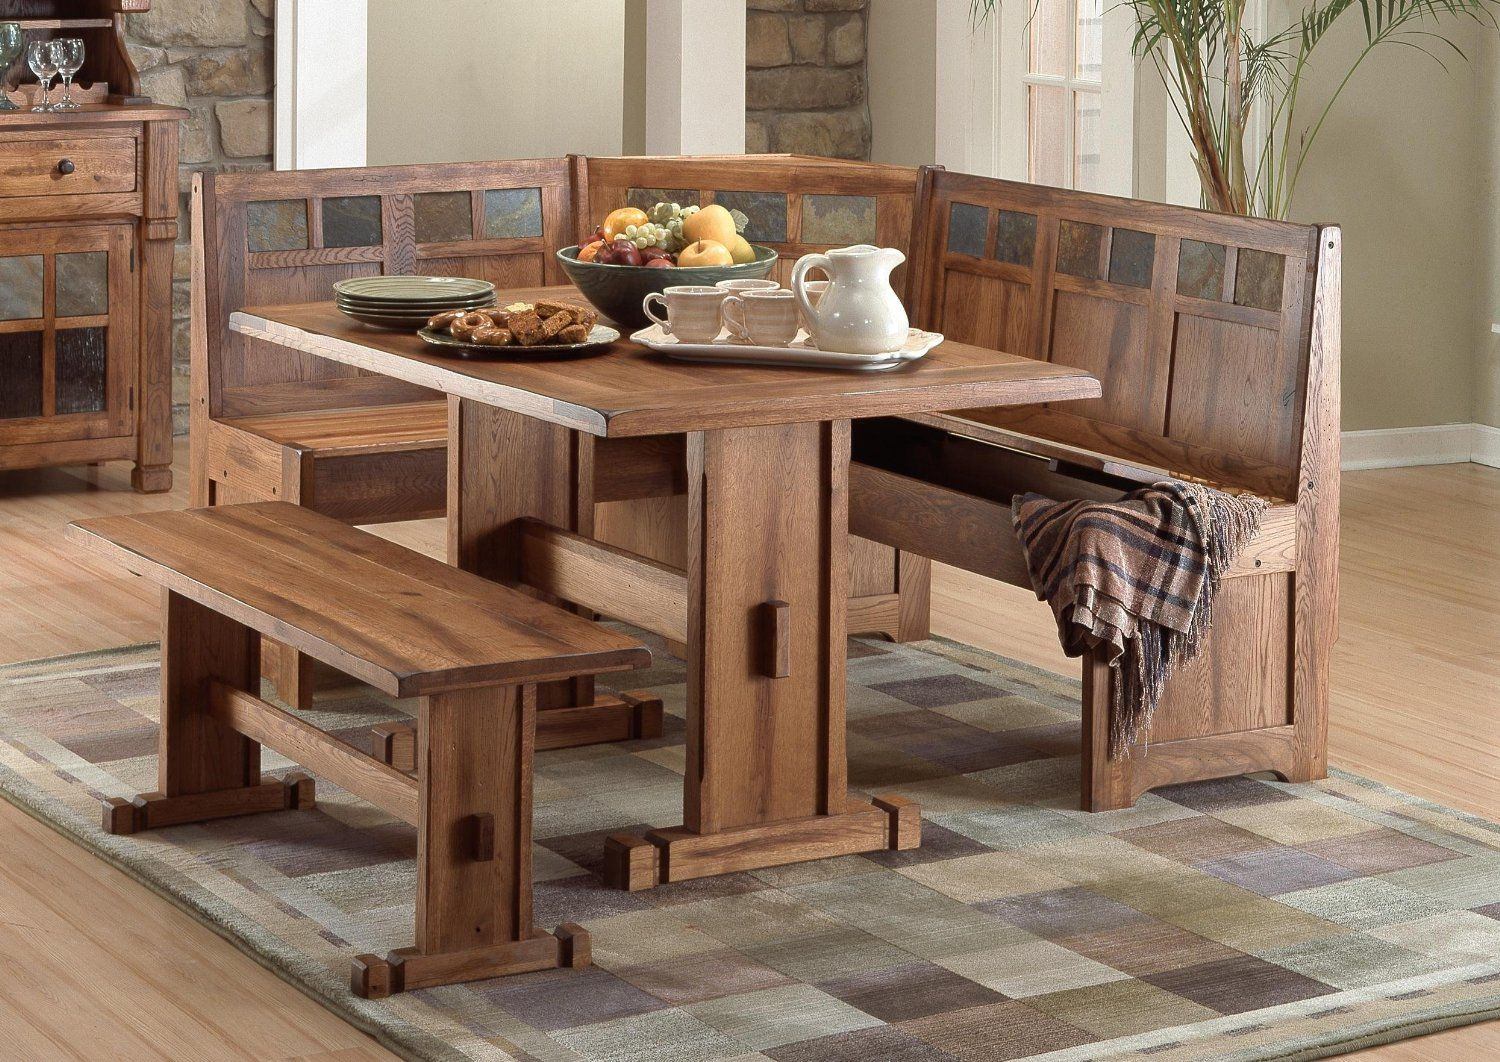 Dining Table In Kitchen Wood Kitchen Table With Bench Seating Designs Ideas Dining Bench